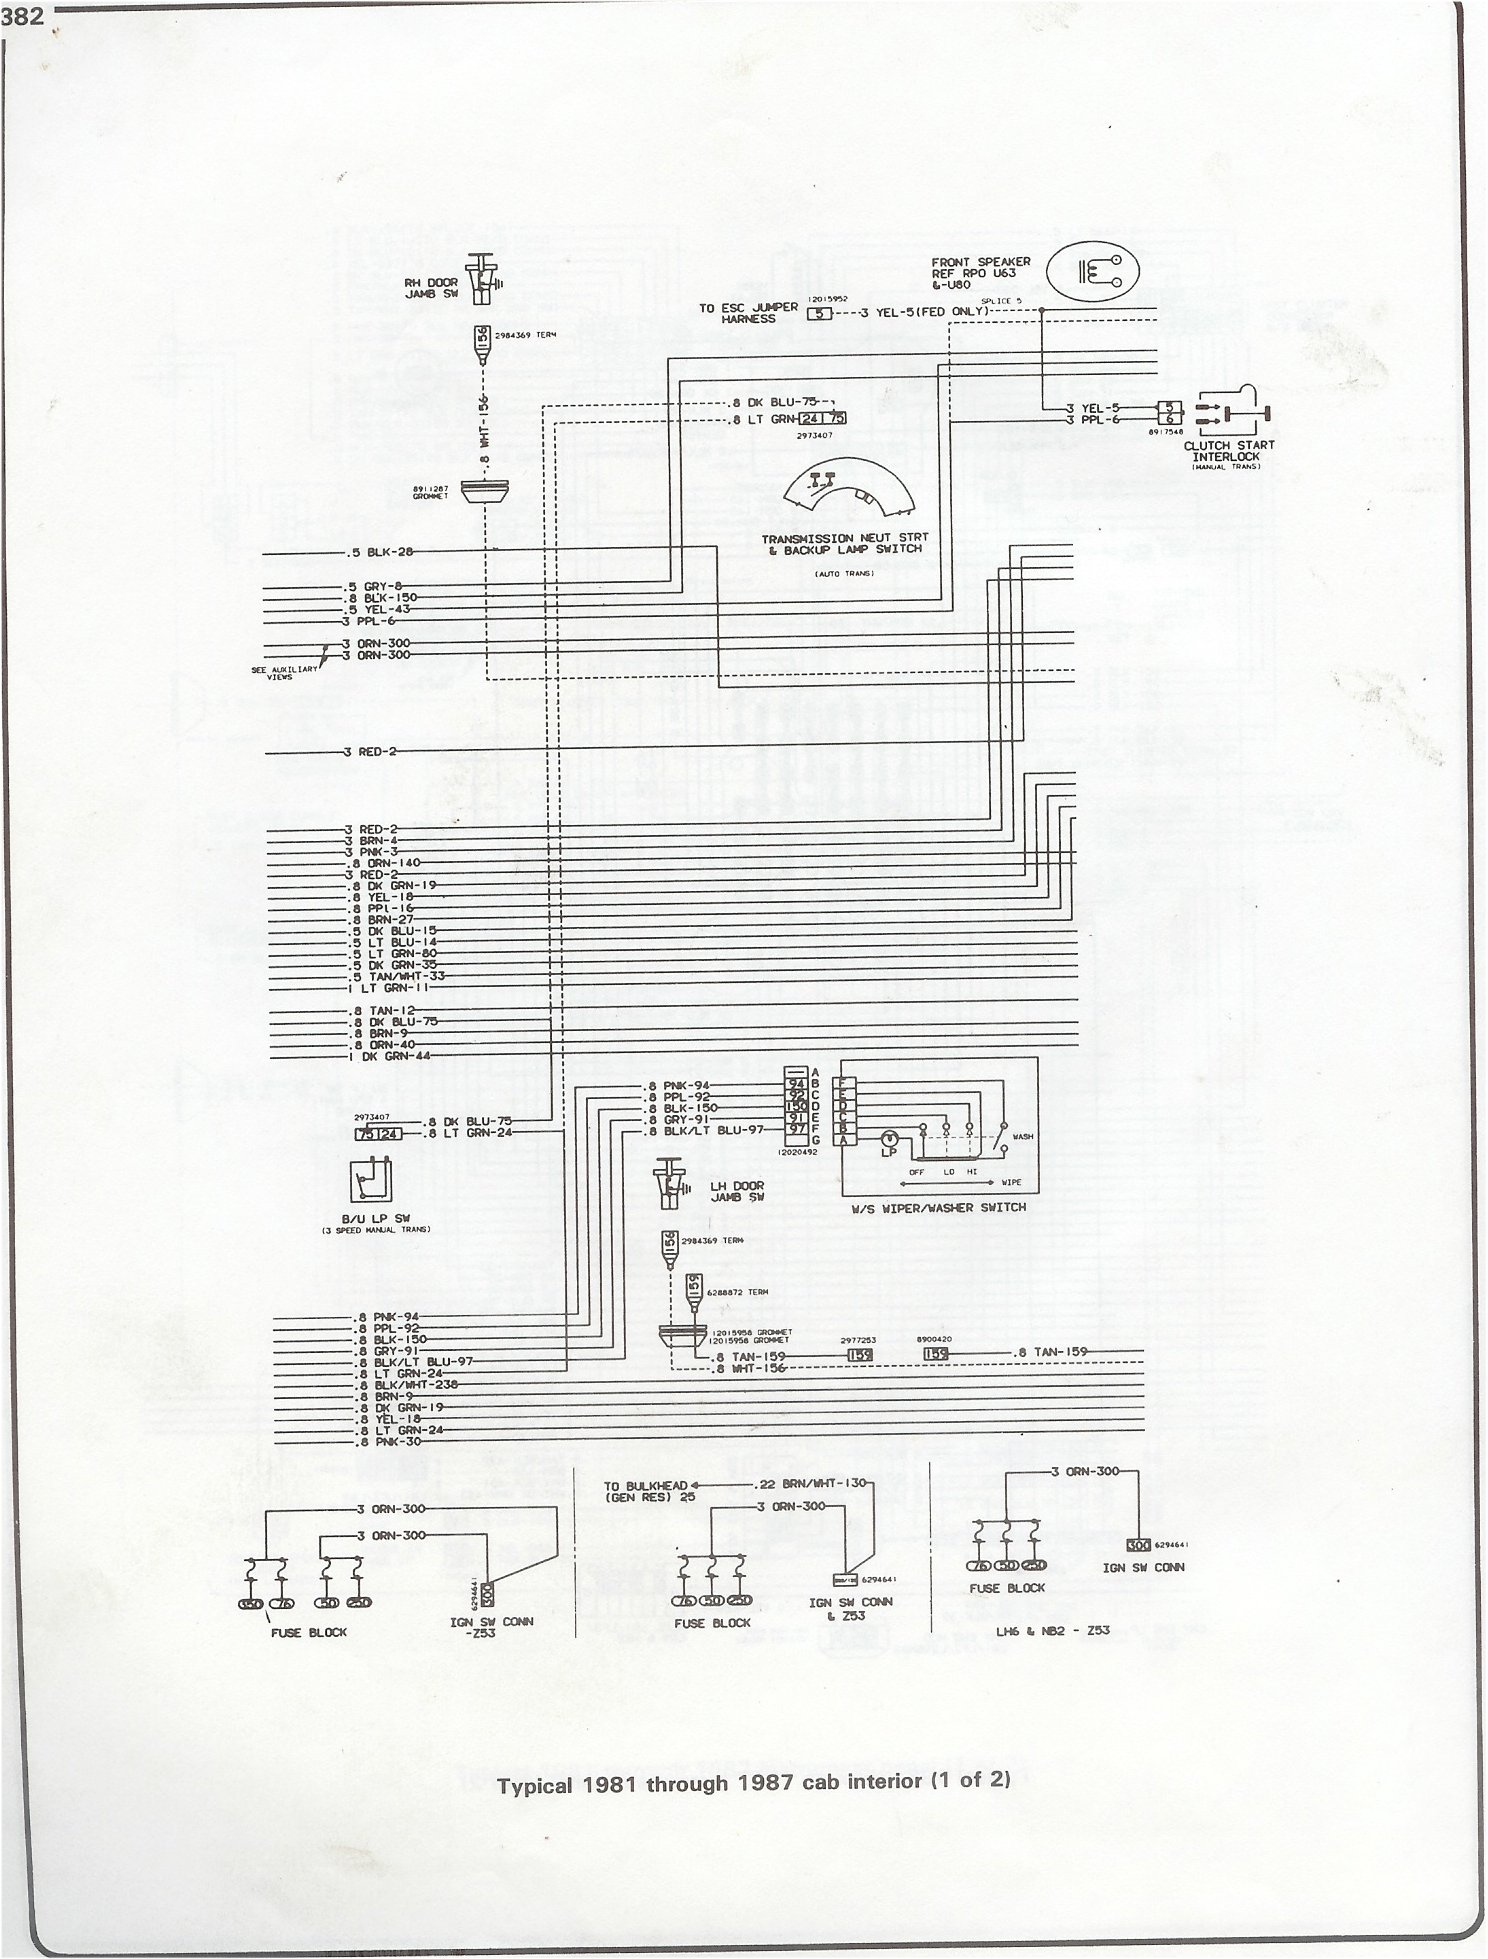 Electrical Diagrams Chevy Only Page 2 Truck Forum 1994 C1500 Wiring Diagram 81 87 I6 Engine Compartment V8 Instrument Panel 1 Computer Control